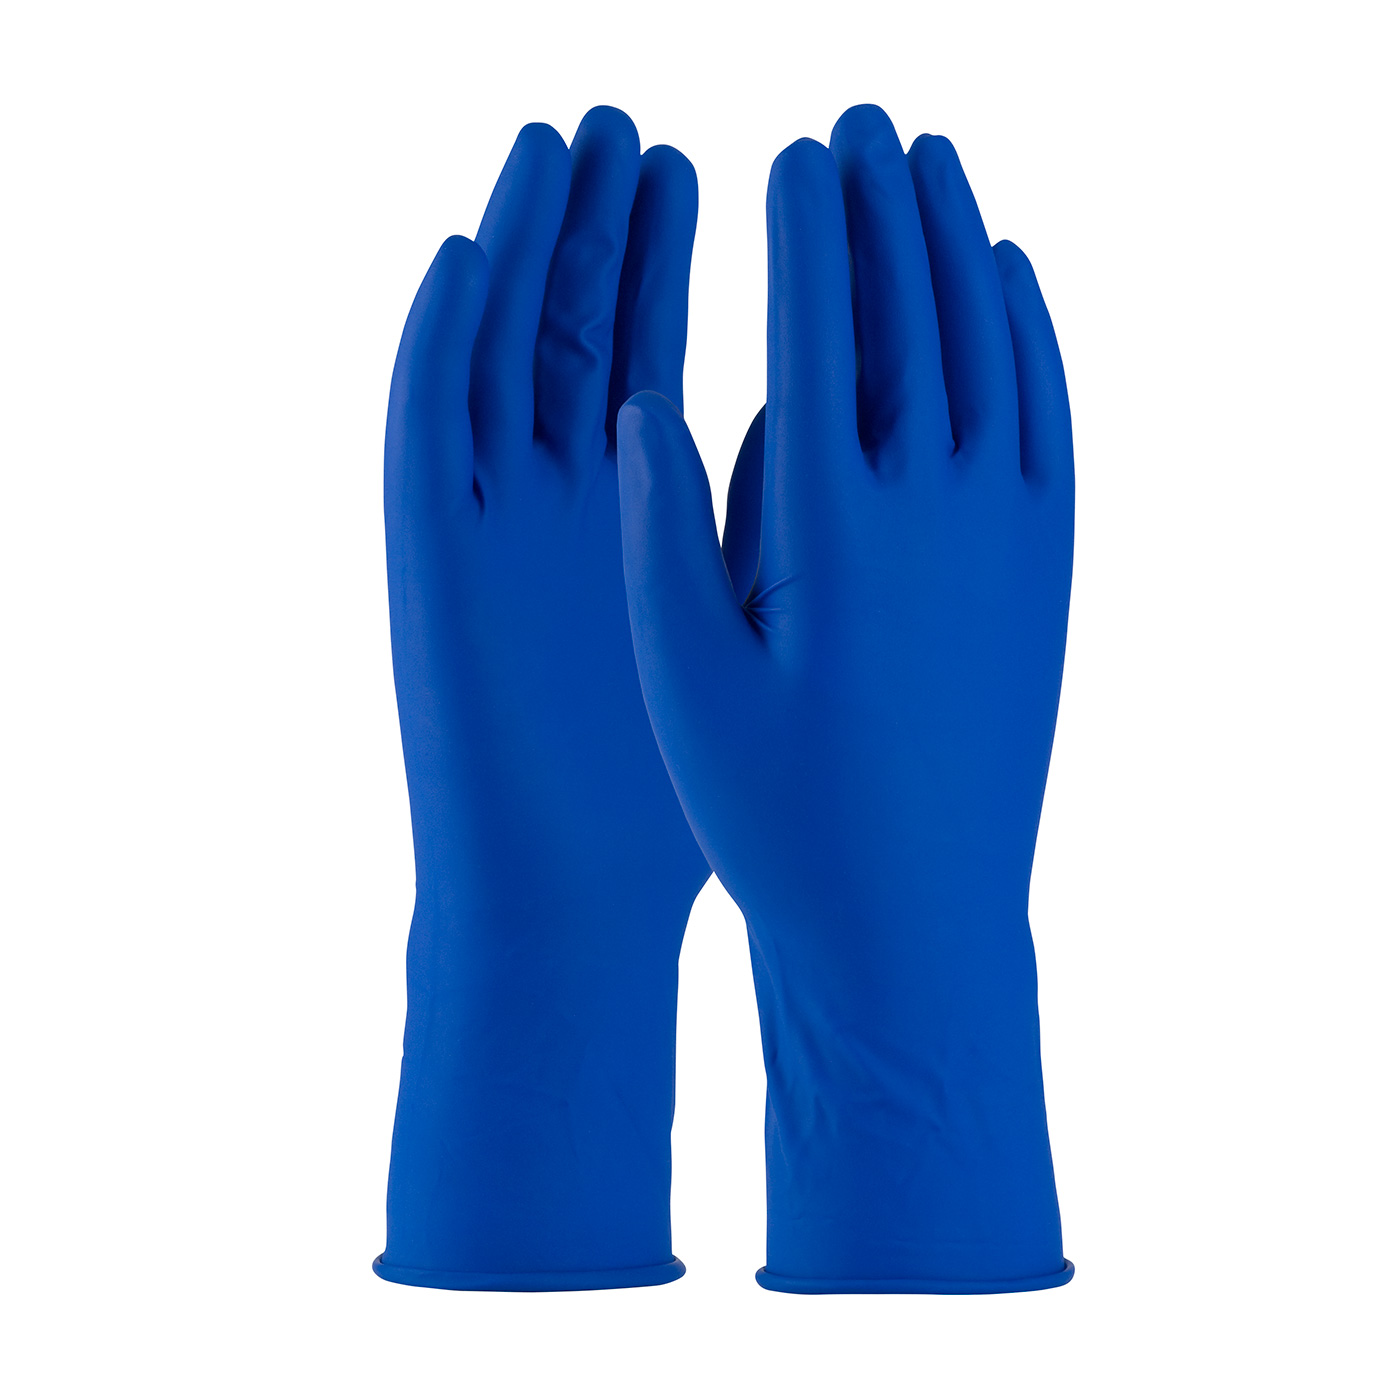 62327PF PIP Ambi-Thix™ Disposable Powder-Free Latex Exam Gloves - 13 mil